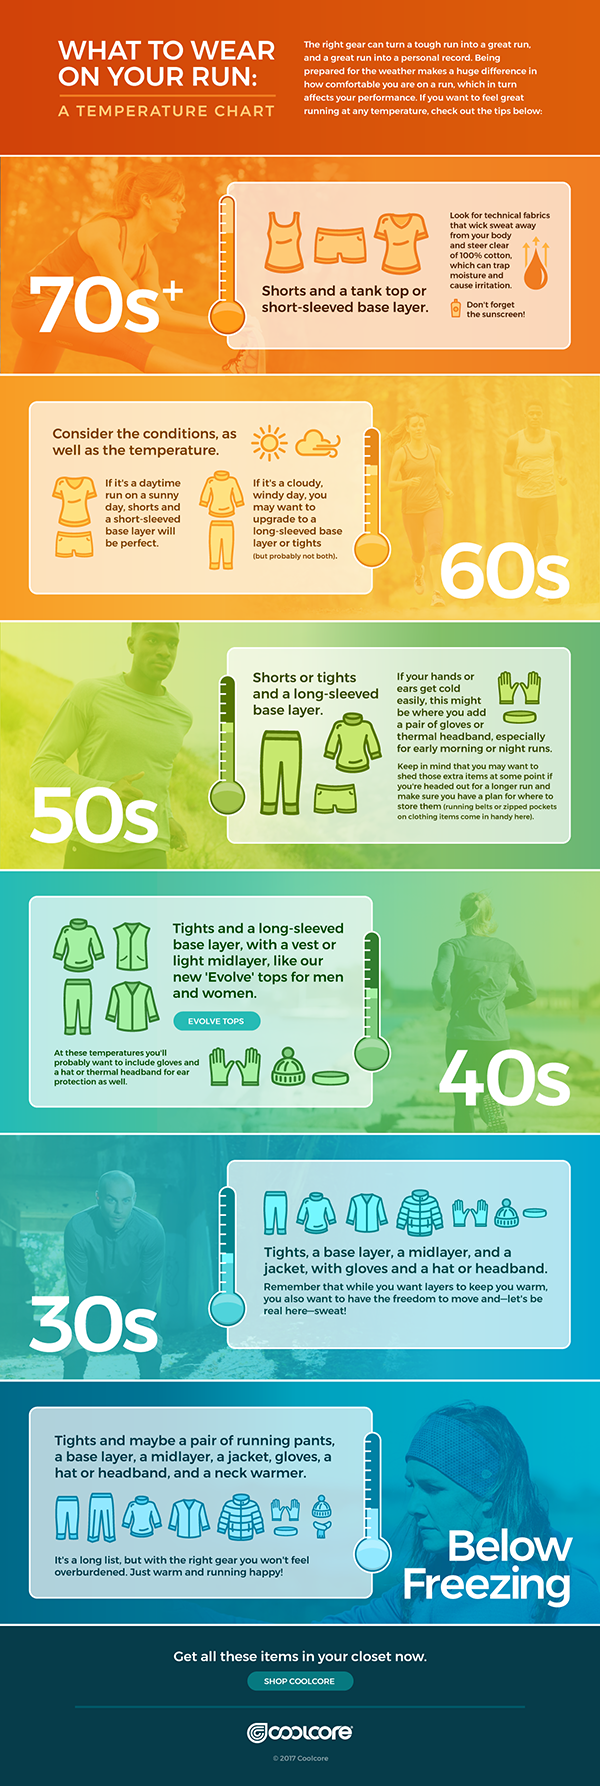 What to Wear Running in Any Temperature: An Infographic